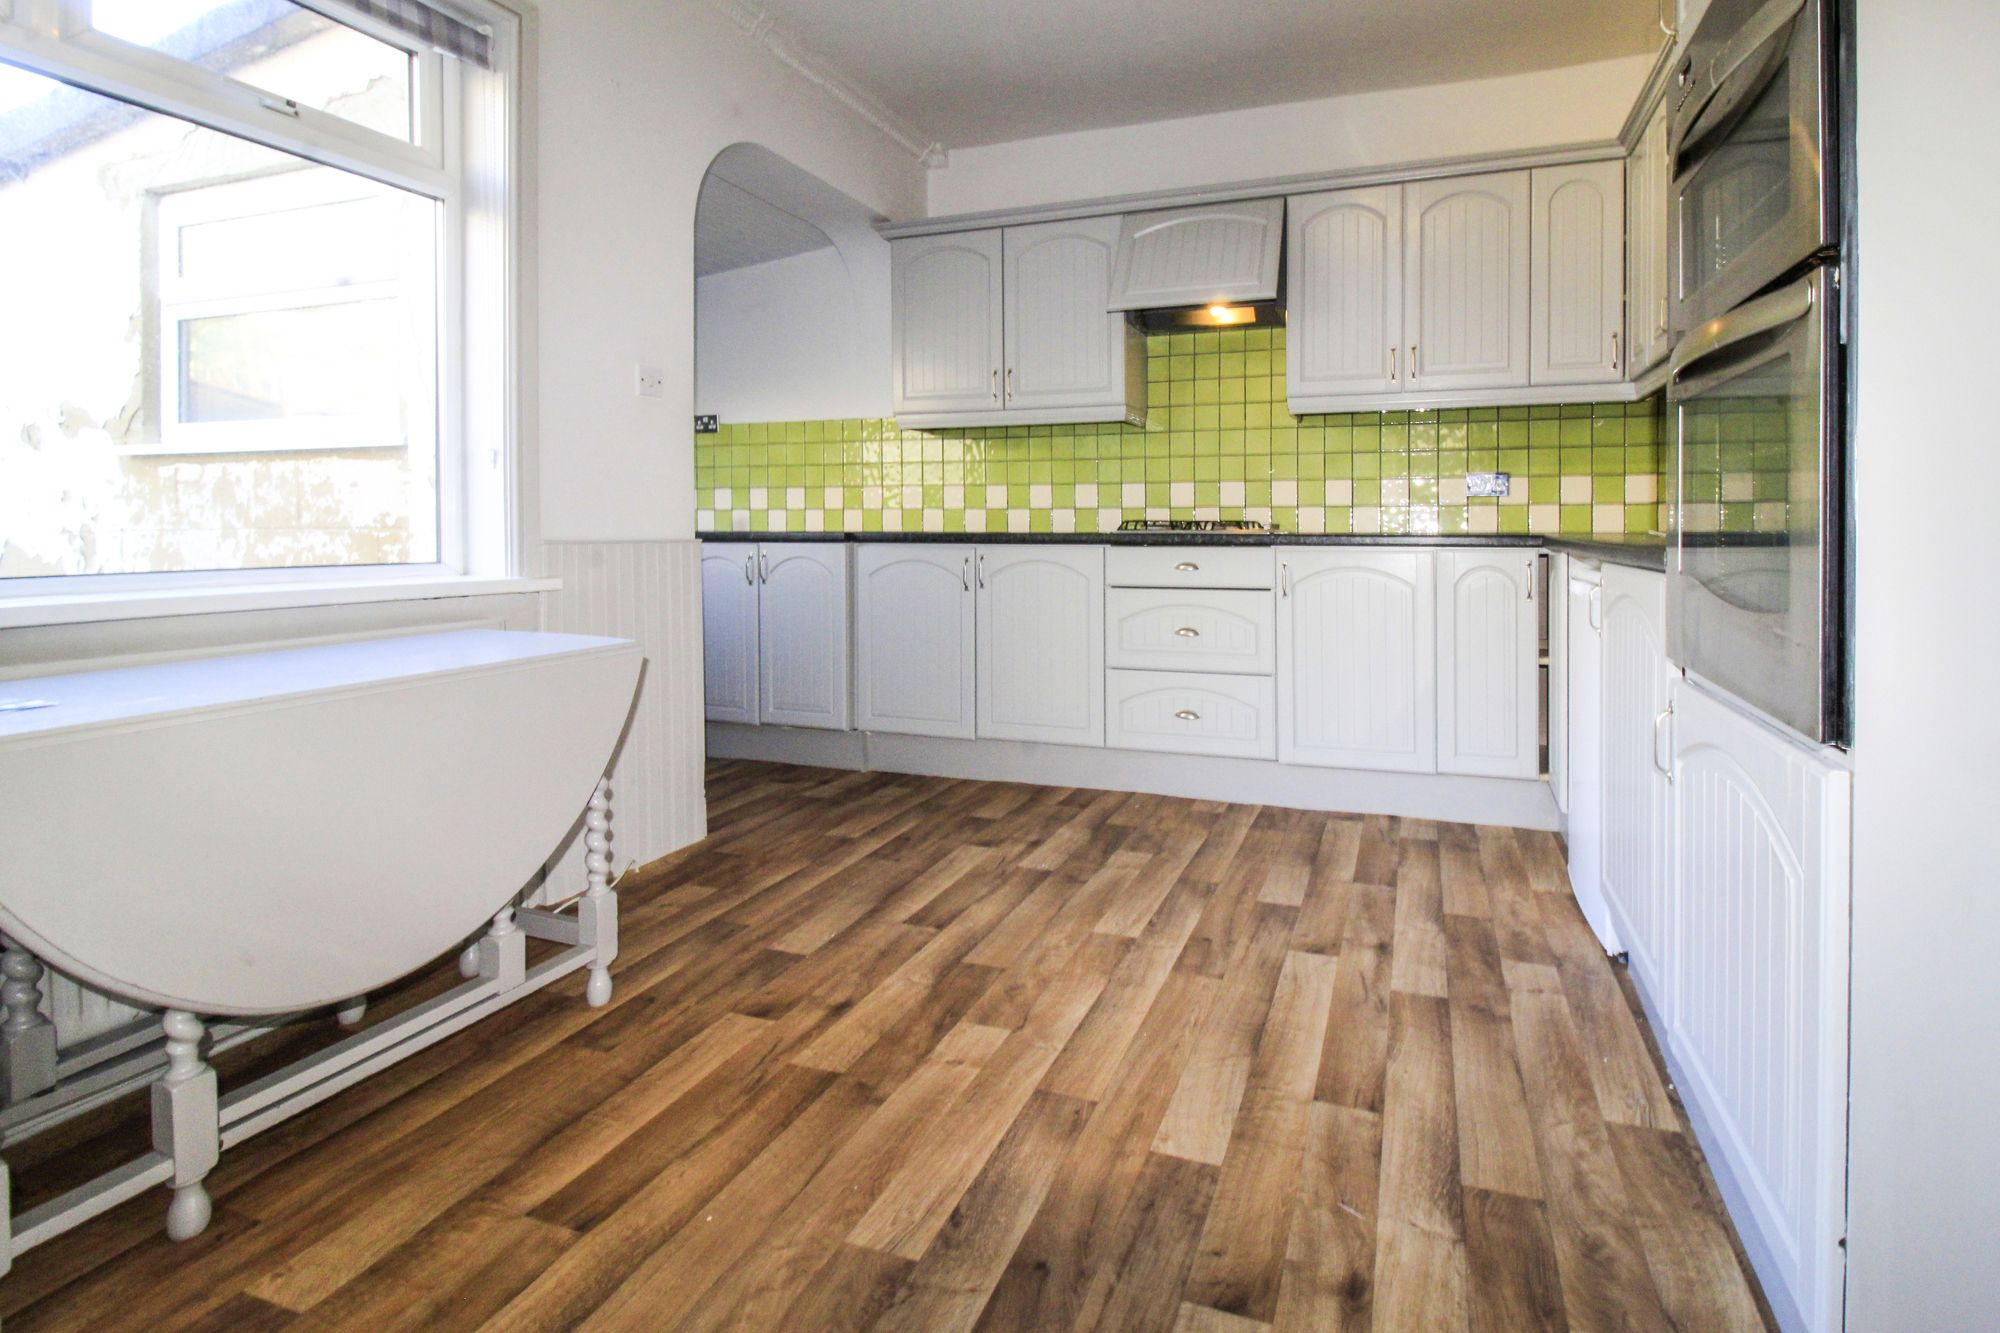 3 bedroom semi-detached house To Let in Shipley - Kitchen